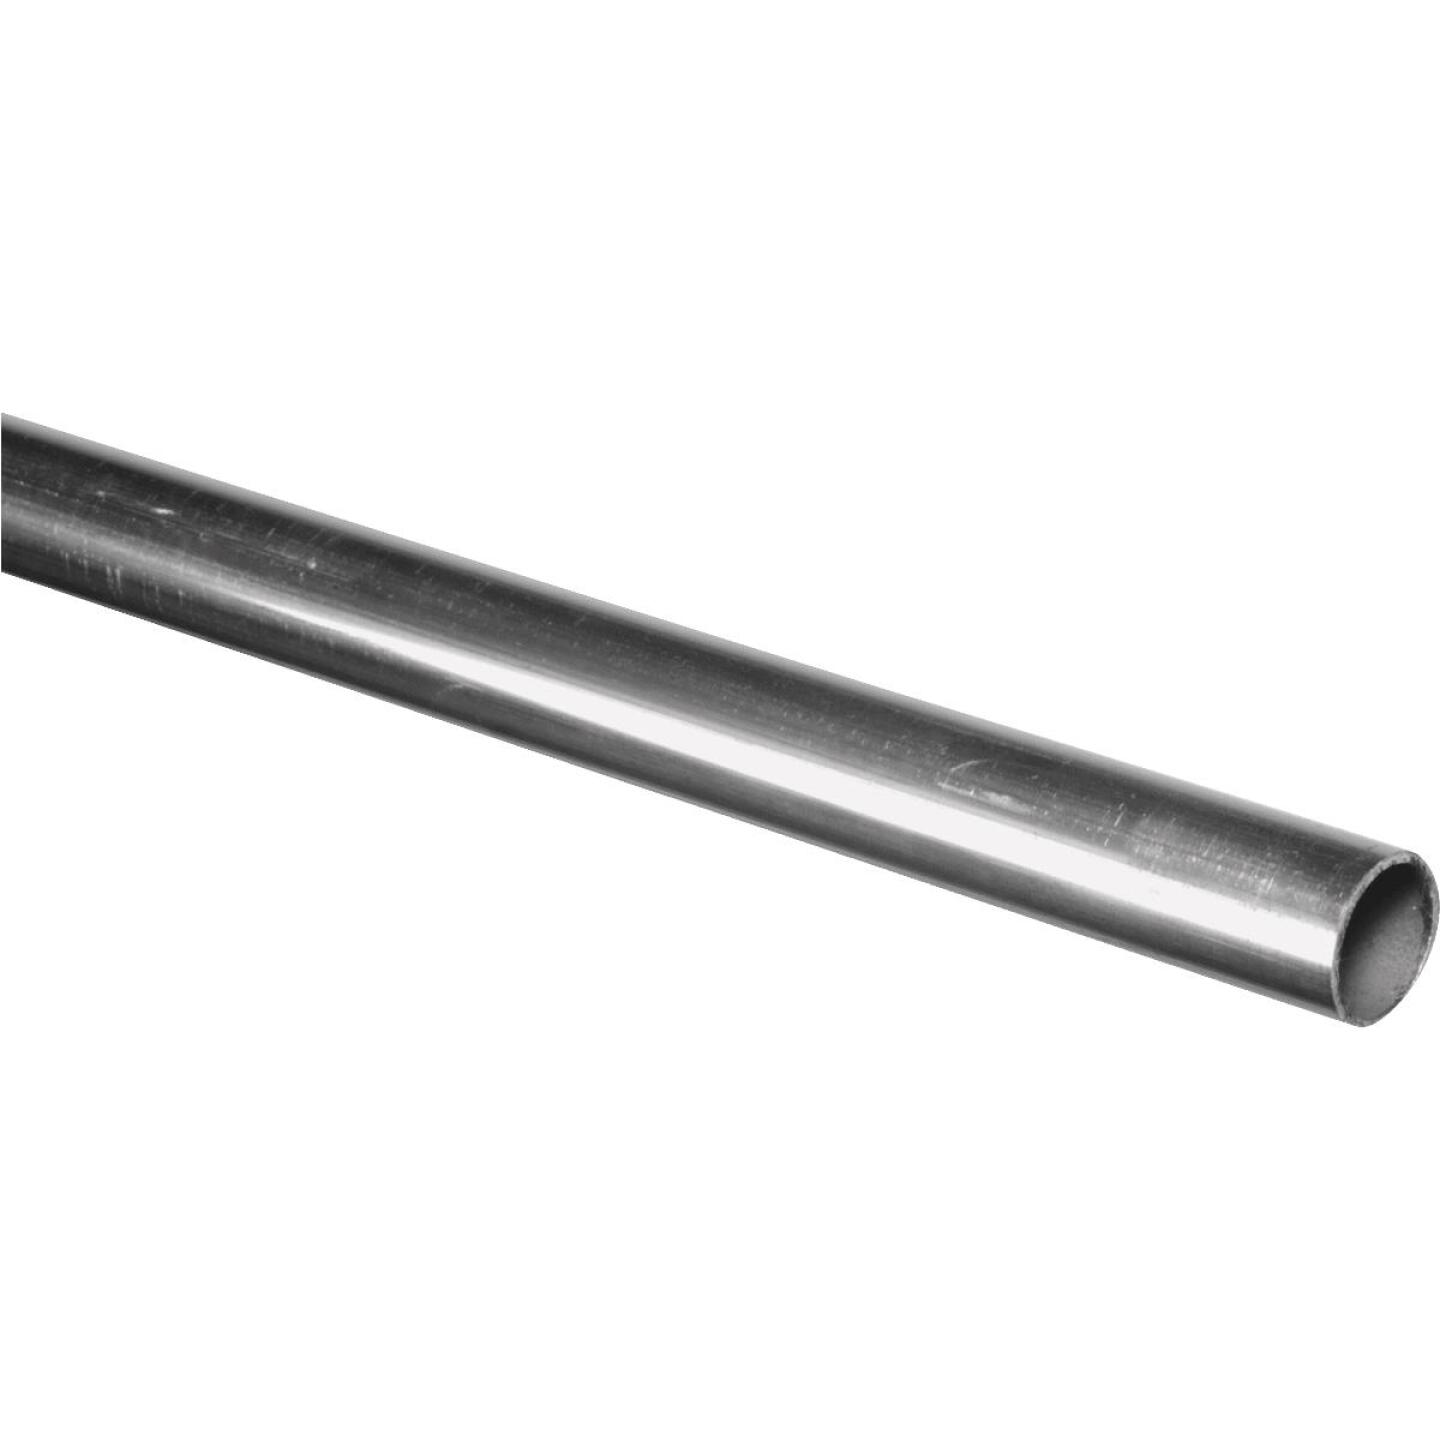 HILLMAN Steelworks Aluminum 1 In. O.D. x 3 Ft. Round Tube Stock Image 1